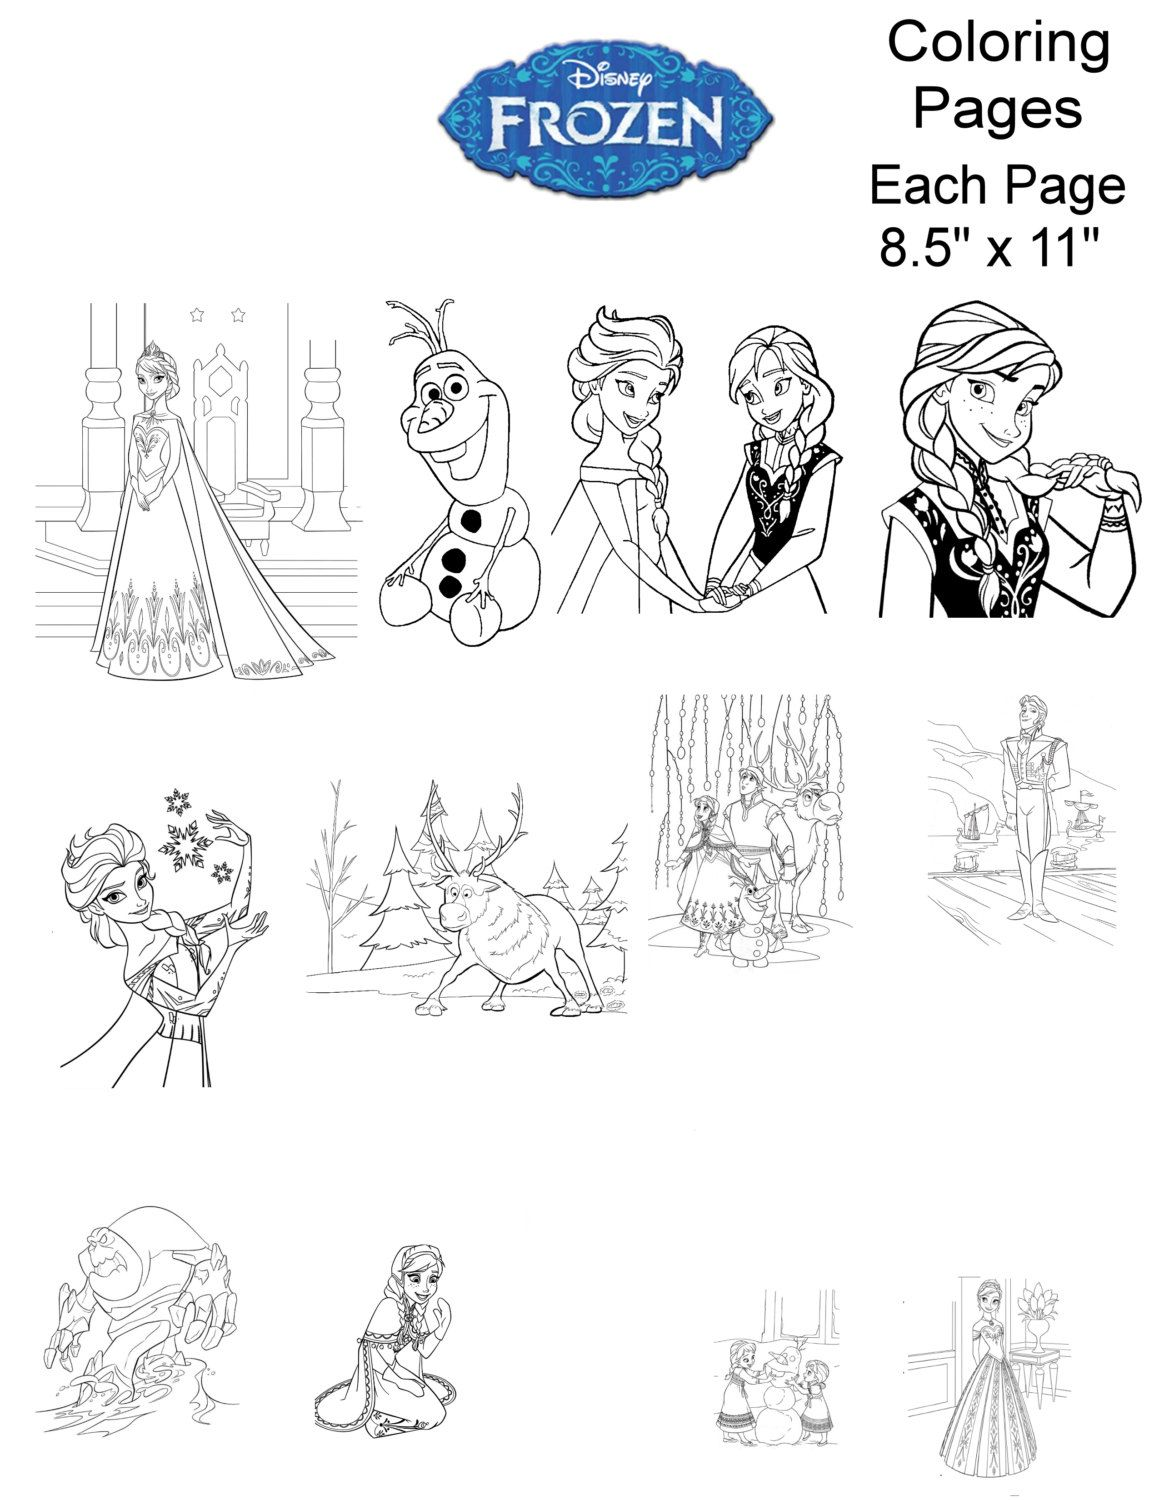 All The Disney Frozen Characters Coloring Pages Free Online Printable Sheets For Kids Get Latest